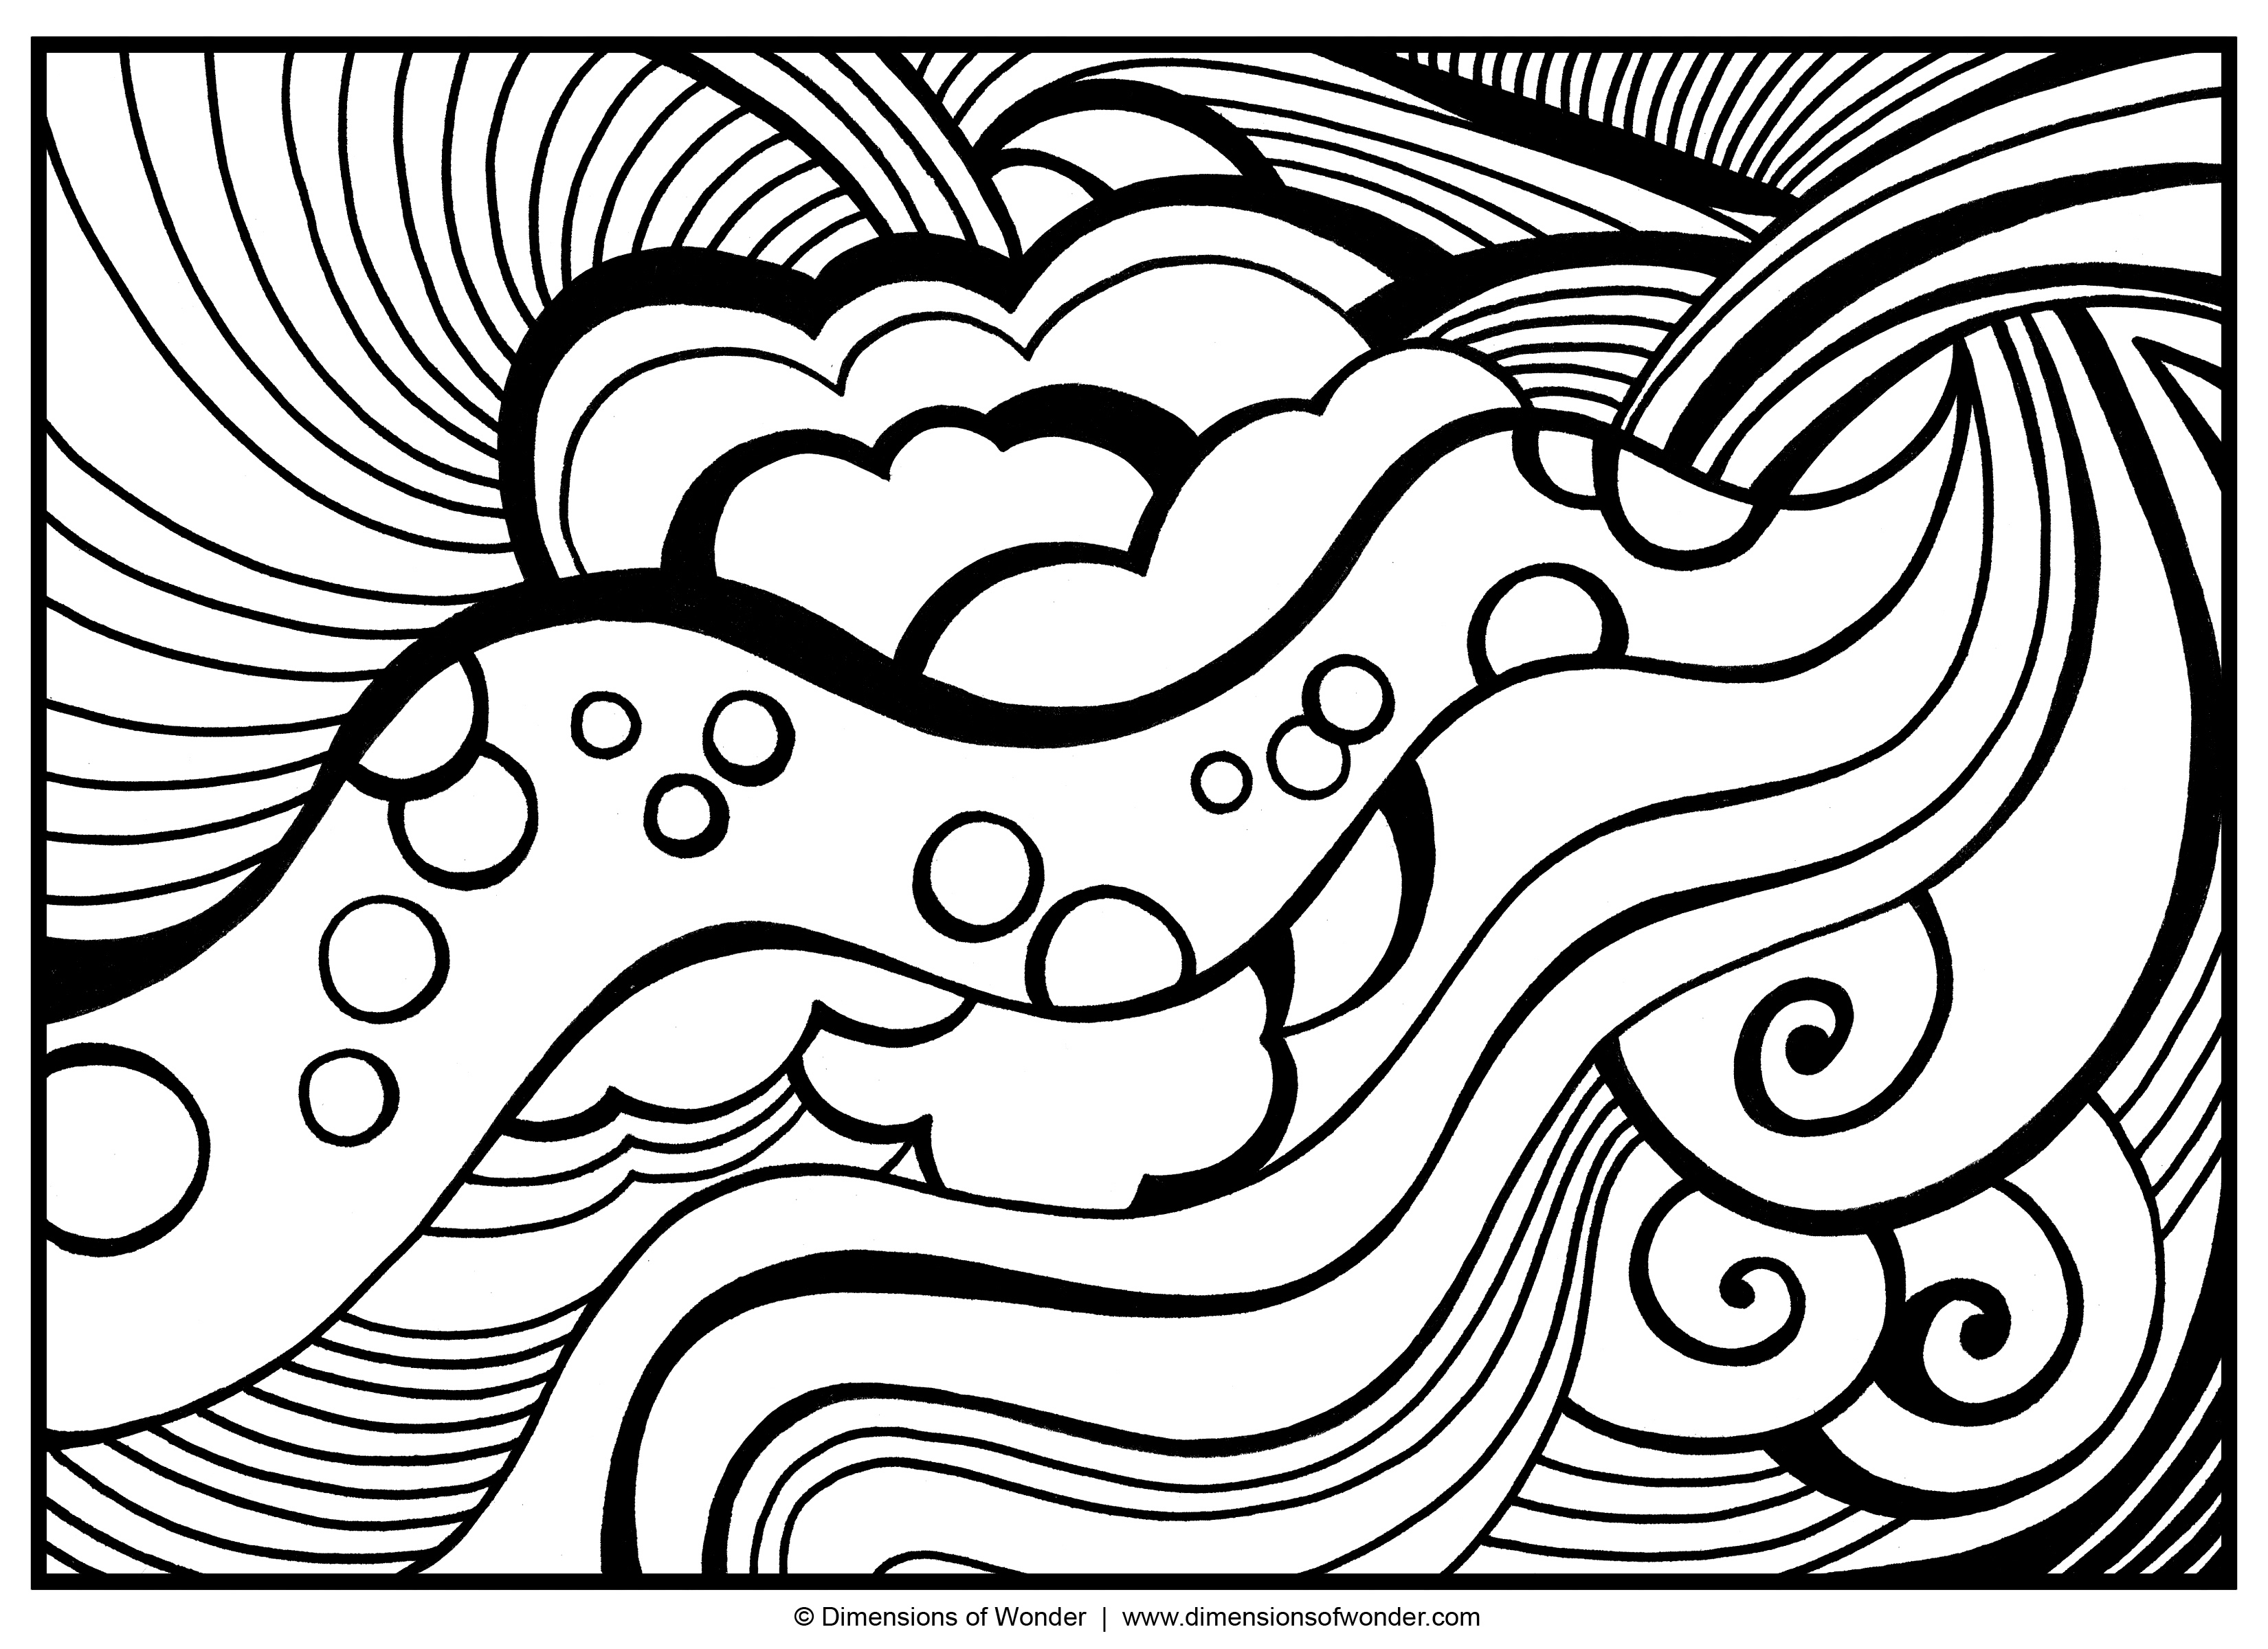 3300x2400 Coloring Pages Kids Abstract Coloring Art Pages For Kids Dr Odd